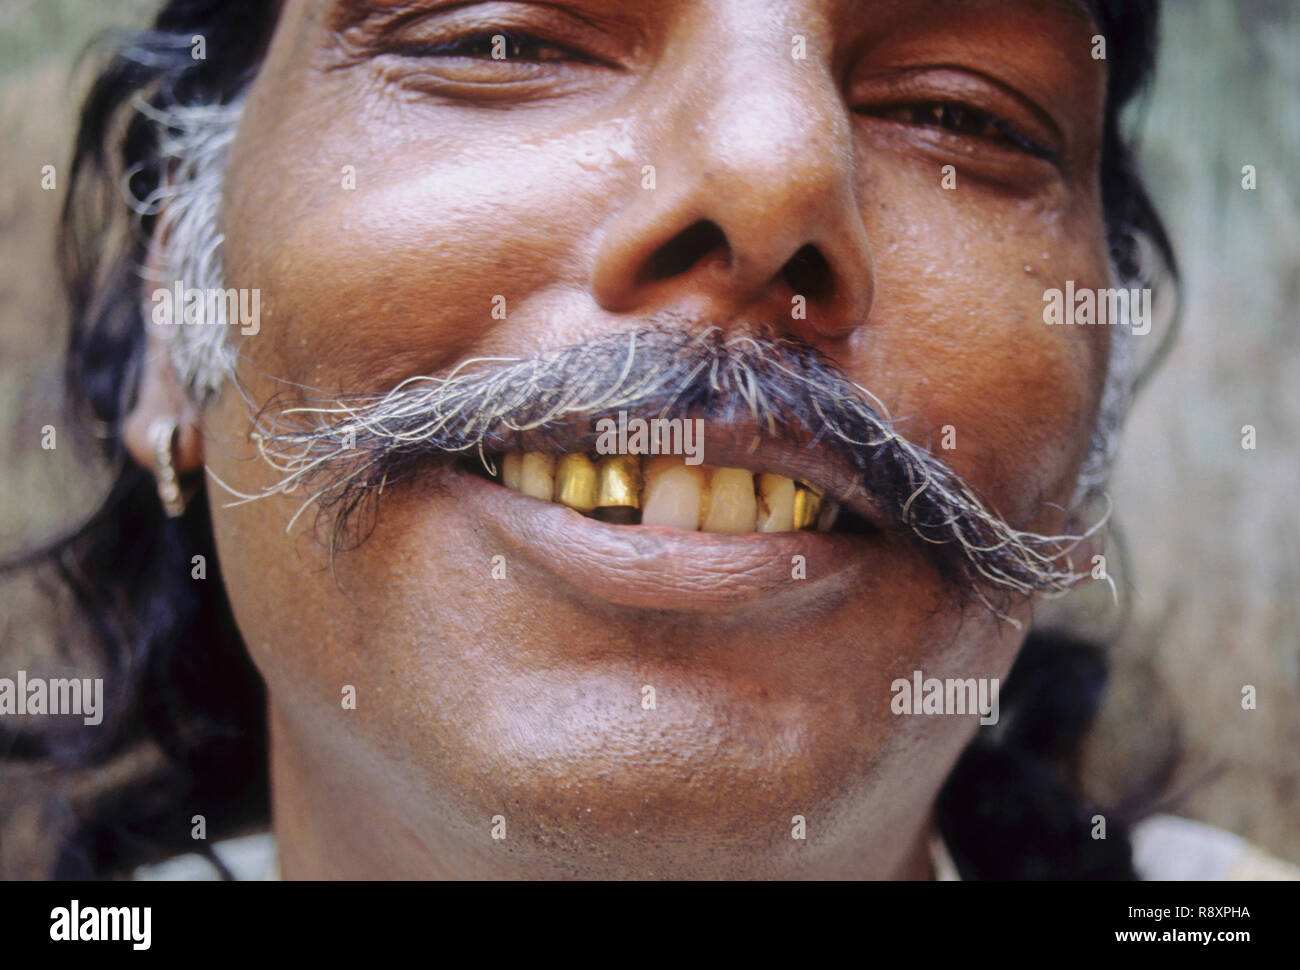 Indian man with gold teeth - Stock Image